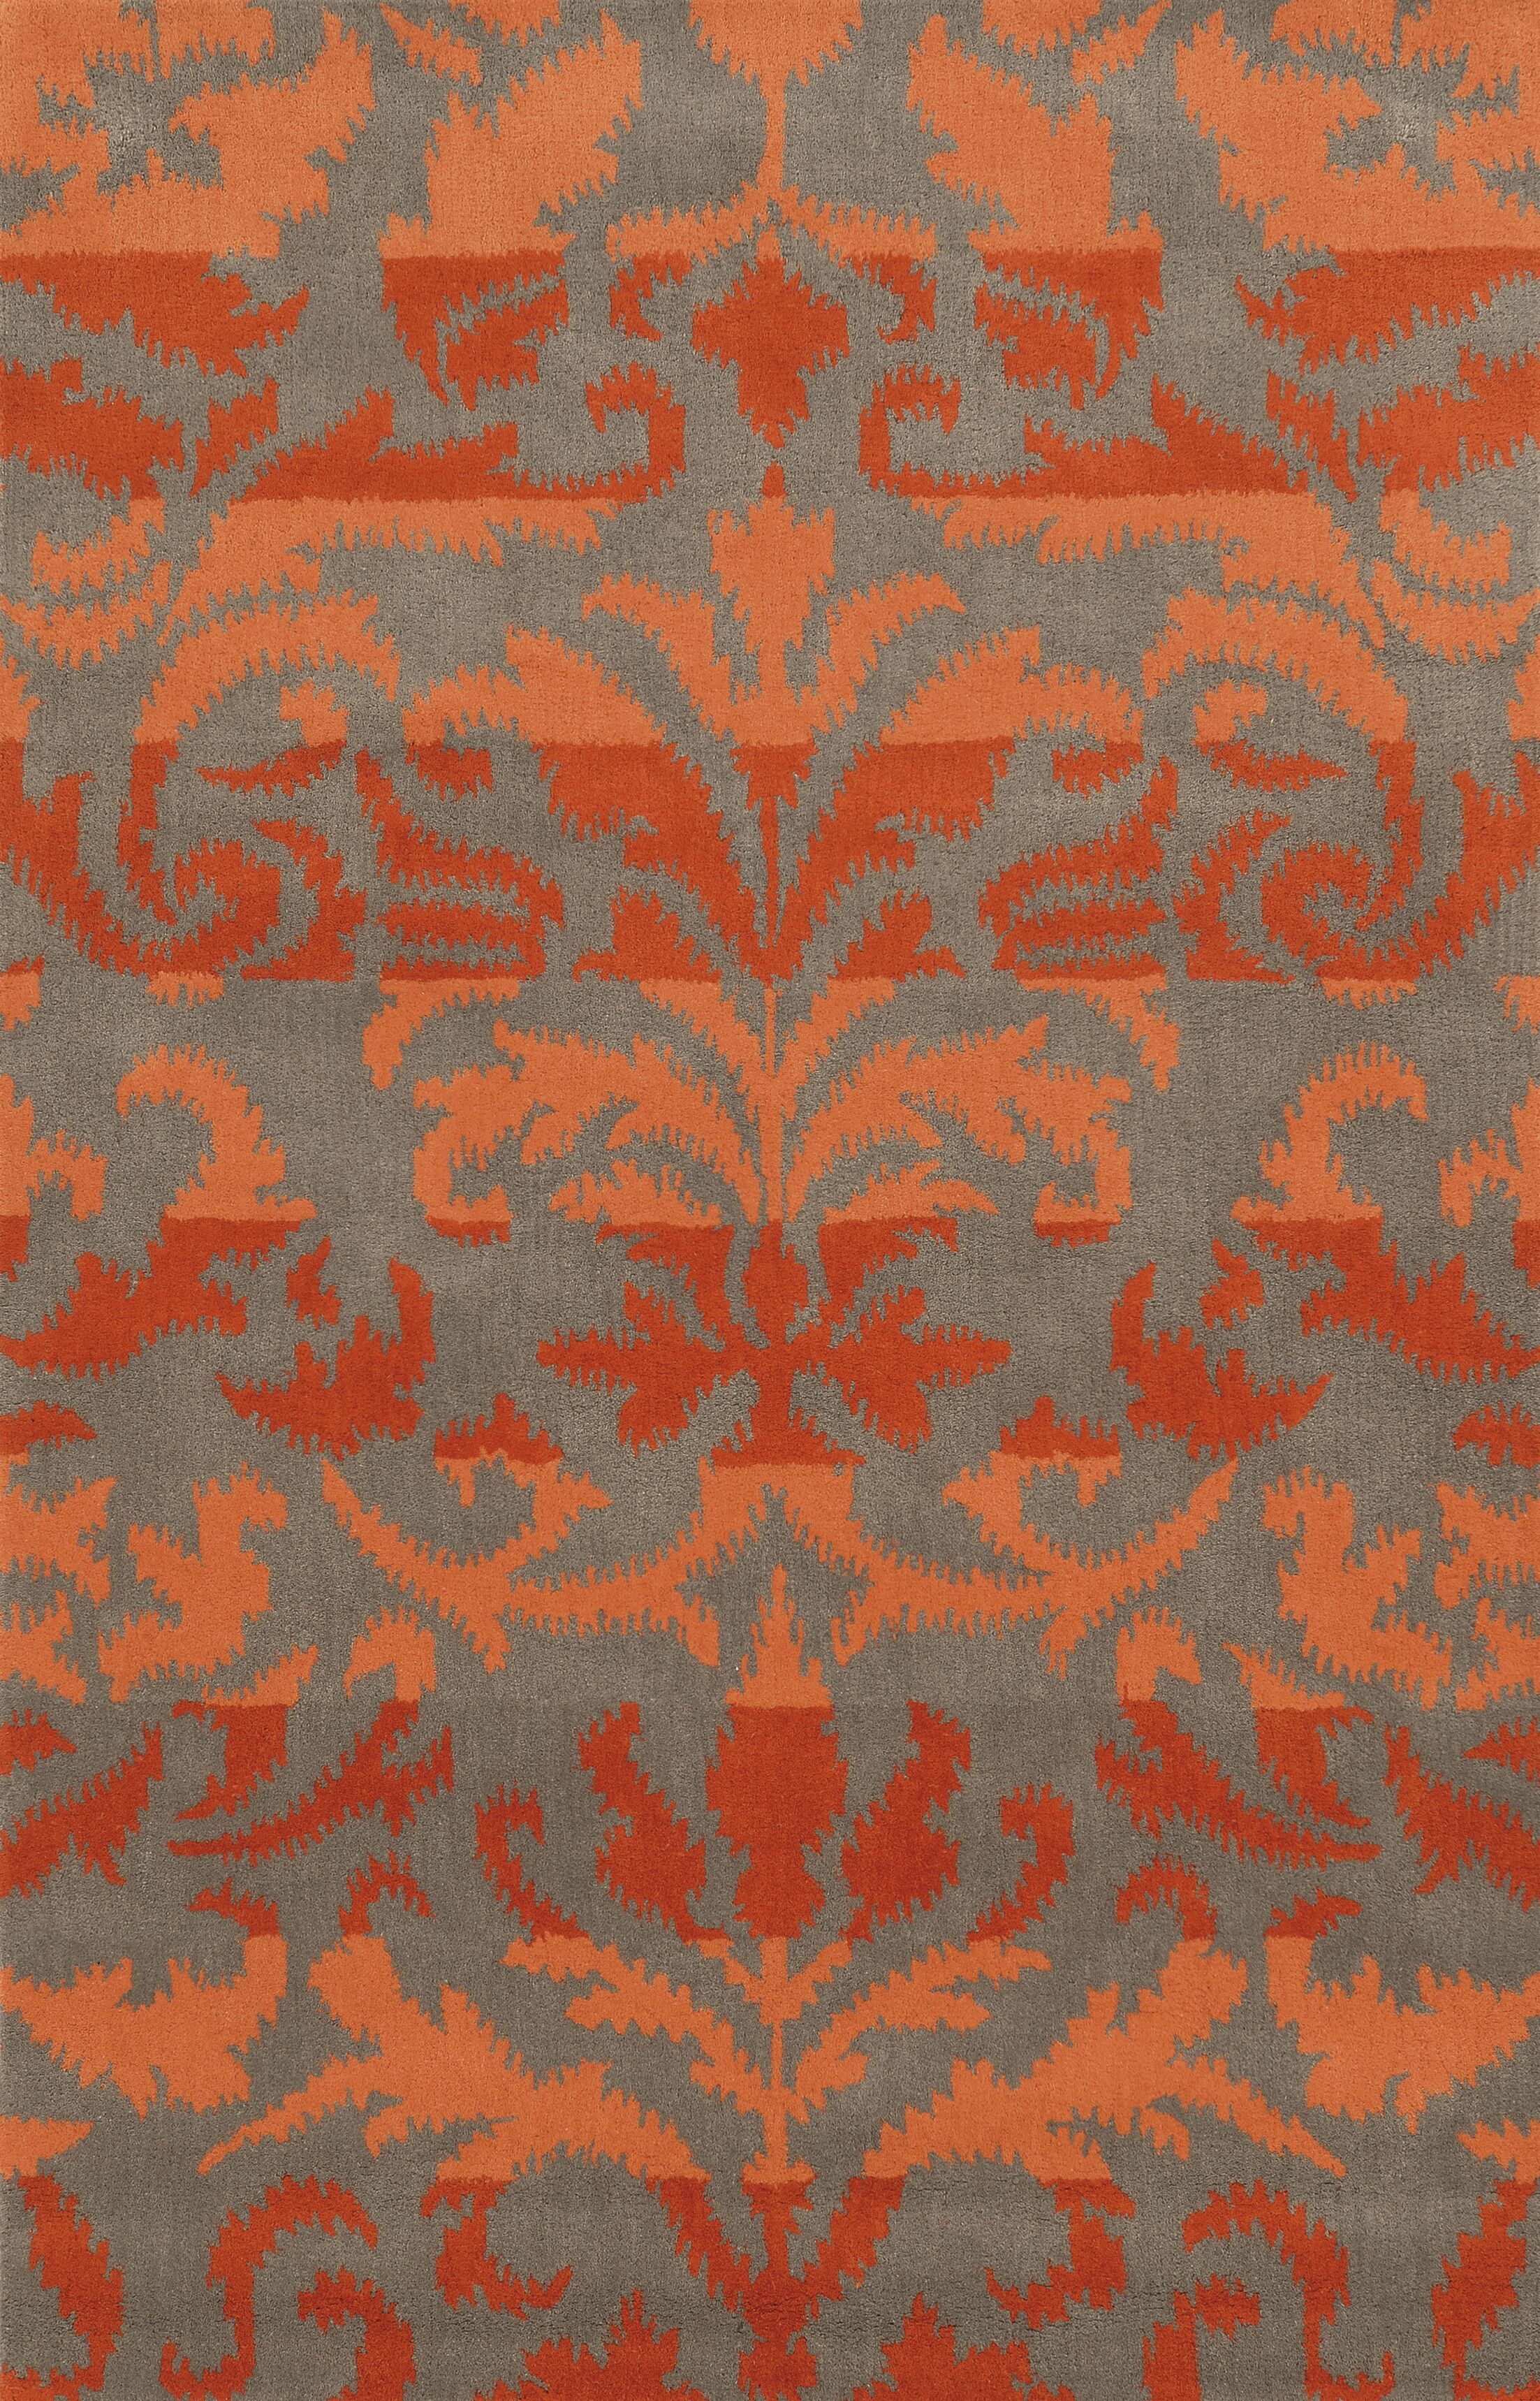 Adiva  Hand-Tufted Red/Orange Area Rug Rug Size: Round 8'